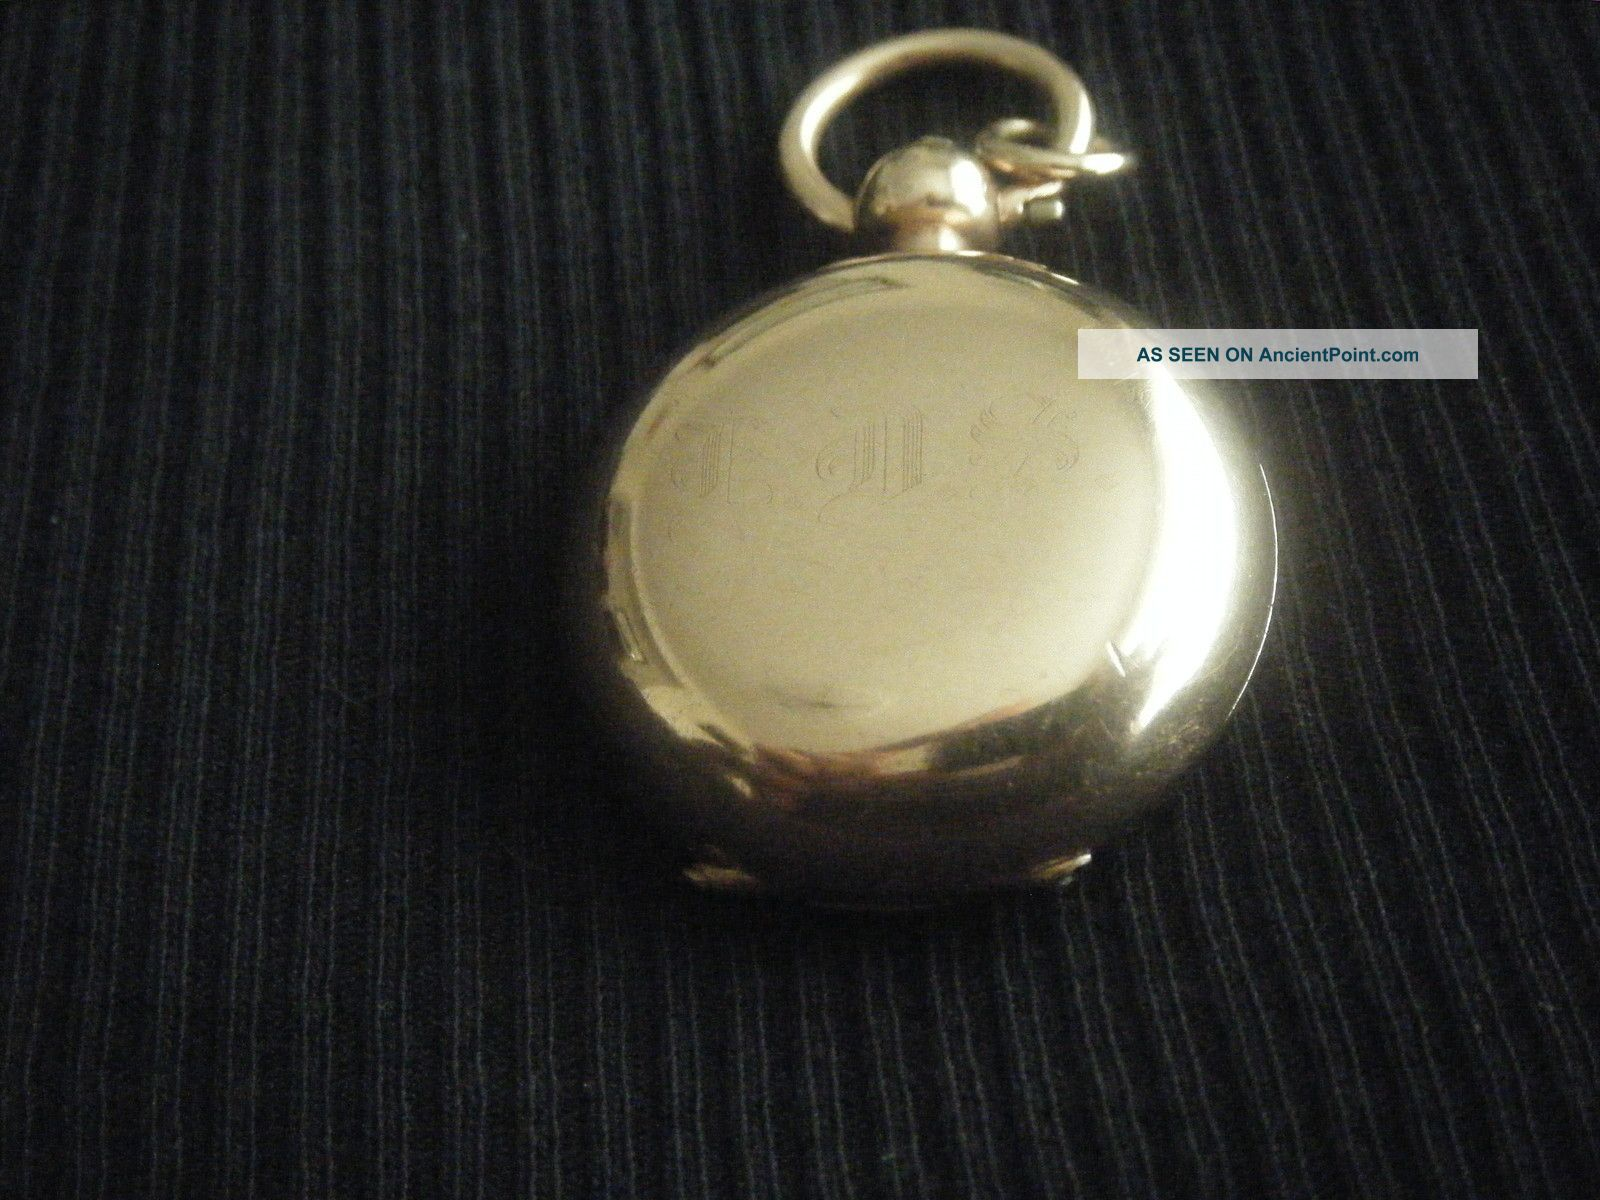 Antique Rolled Gold Sovereign Case. Pocket Watches/ Chains/ Fobs photo